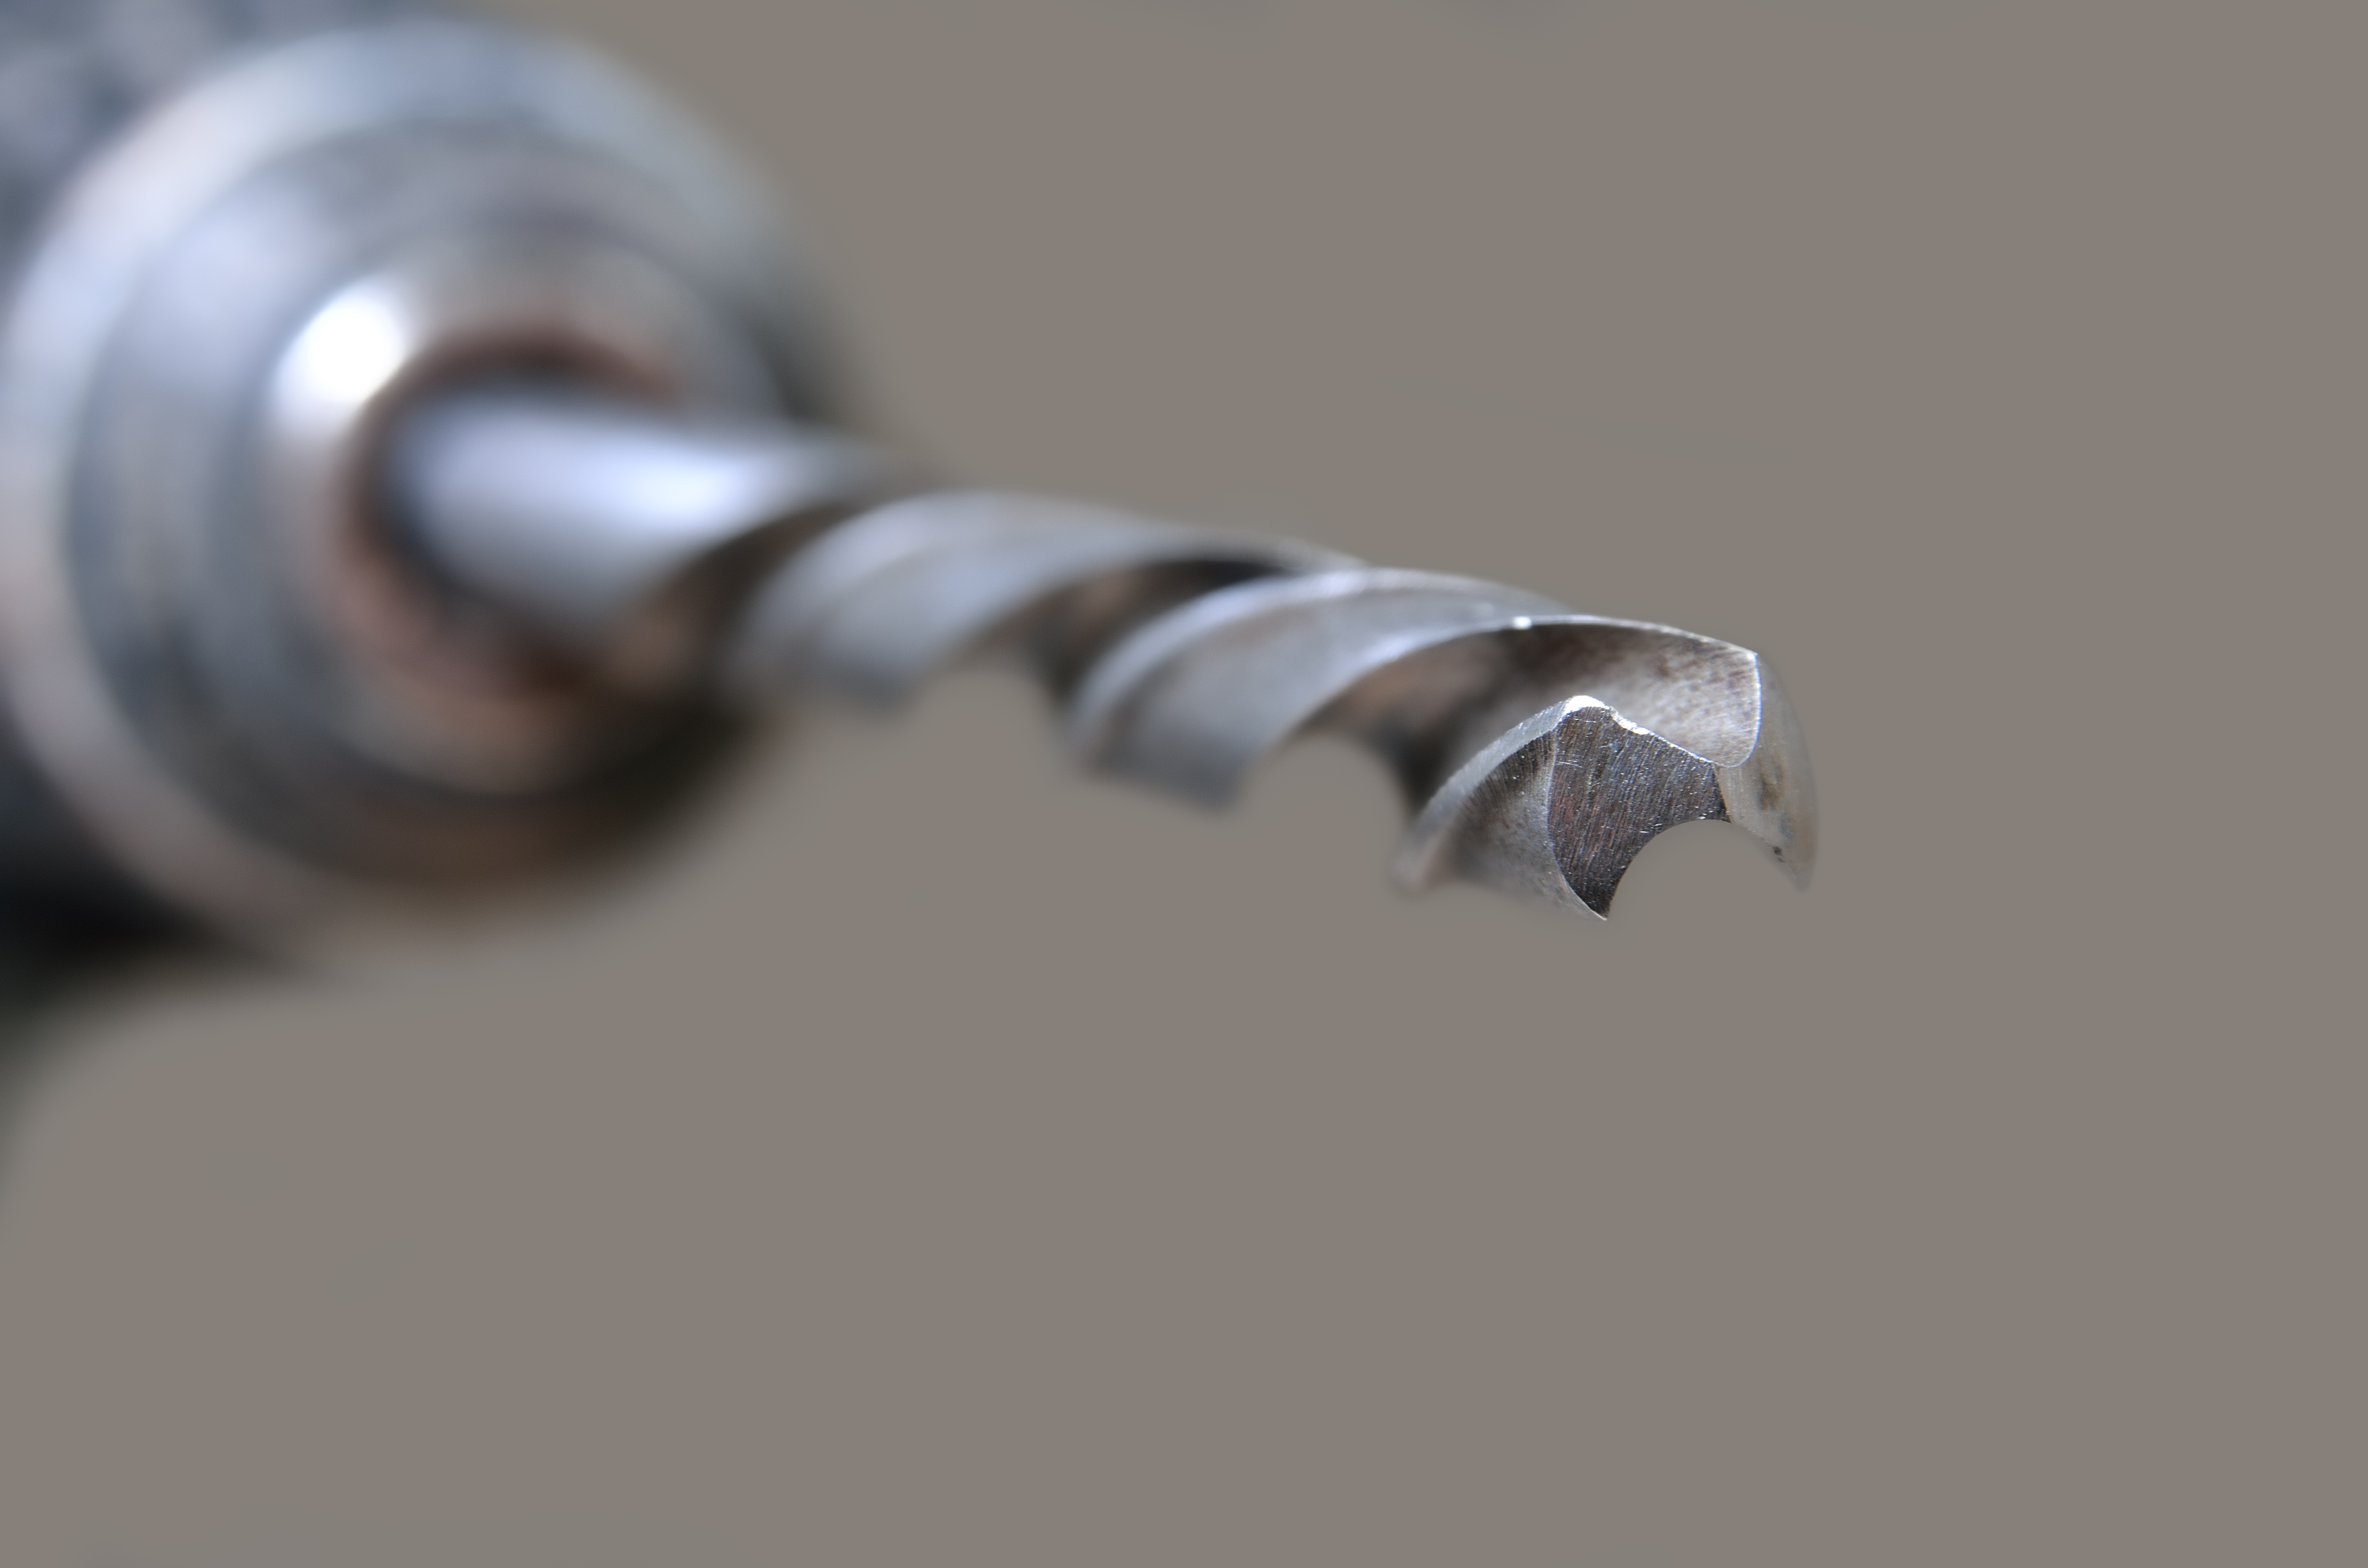 How to Change A Drill Bit | Hunker